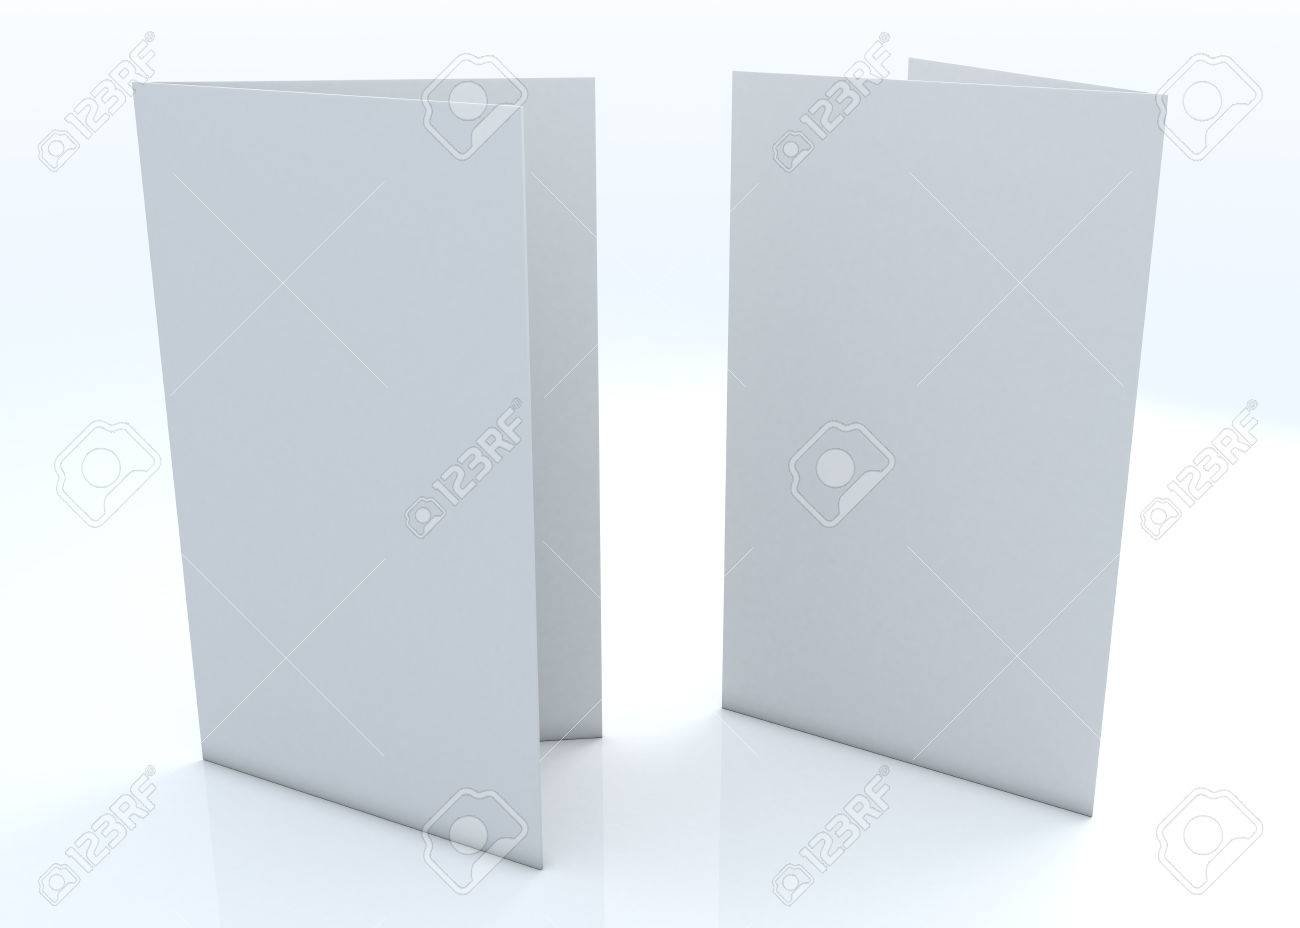 3d Blank Clean White Greeting Card Template 2 Side With Reflection